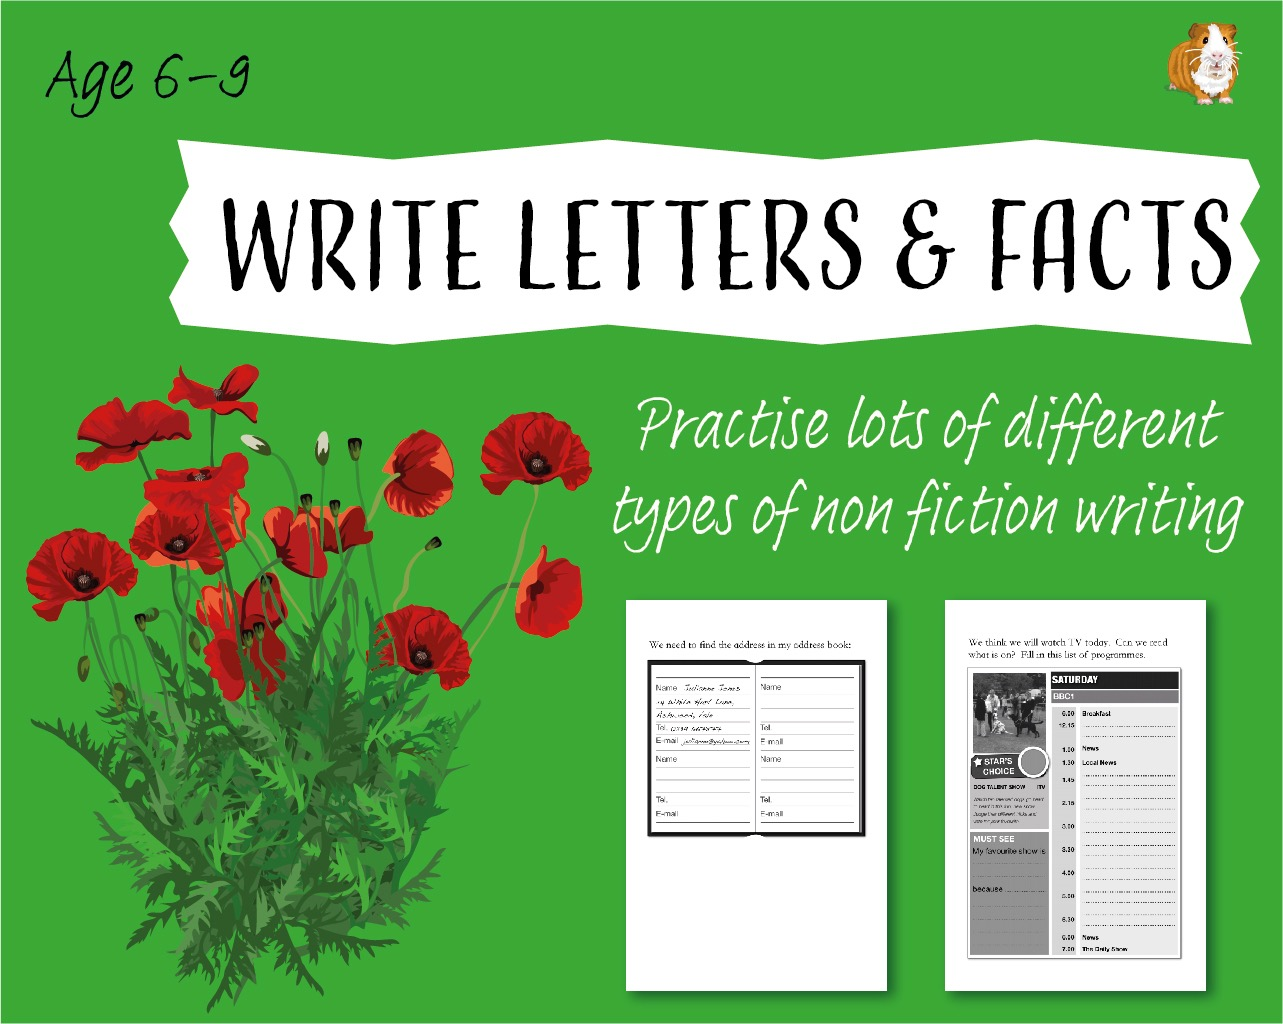 Practise Lots Of Different Types Of Non Fiction Writing (6-9 years)